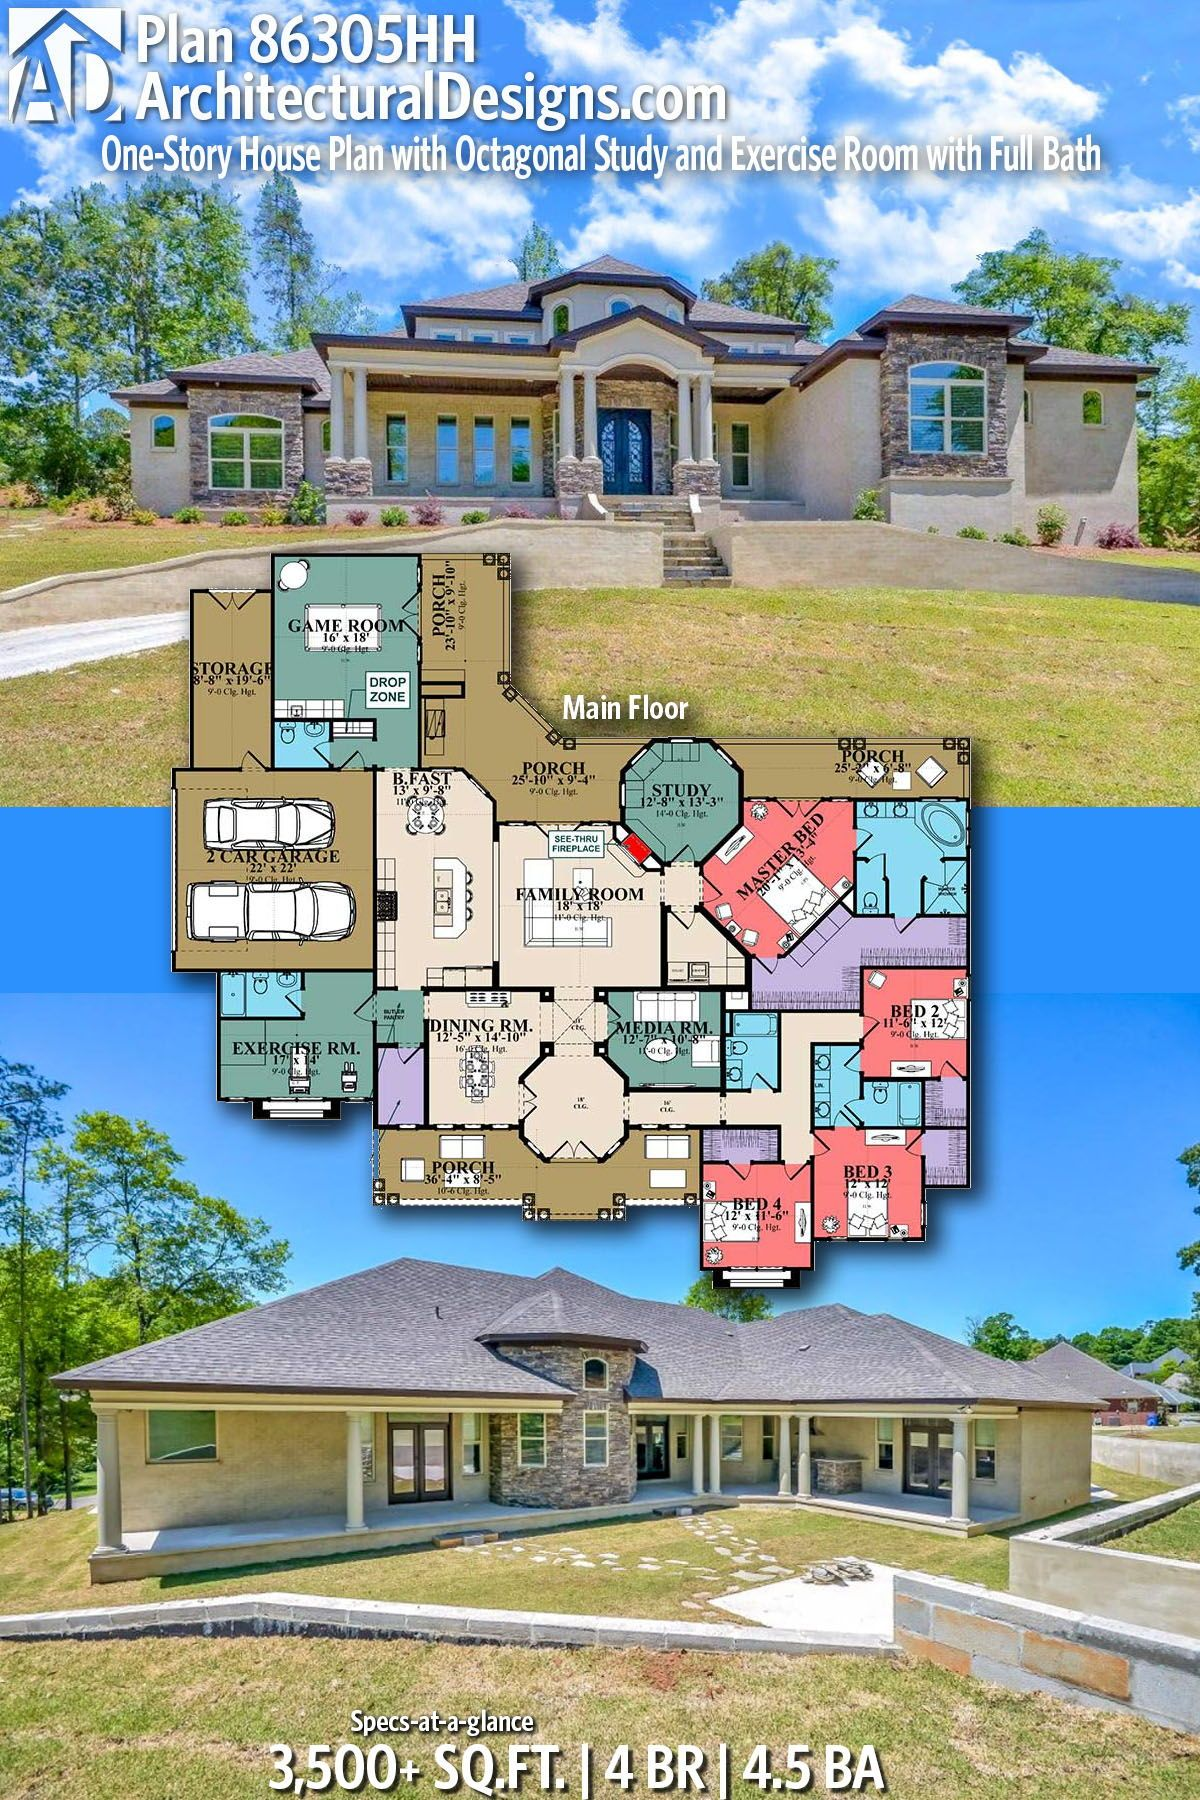 Plan 86305hh One Story House Plan With Octagonal Study And Exercise Room With Full Bath Architectural Design House Plans Courtyard House Plans Dream House Plans